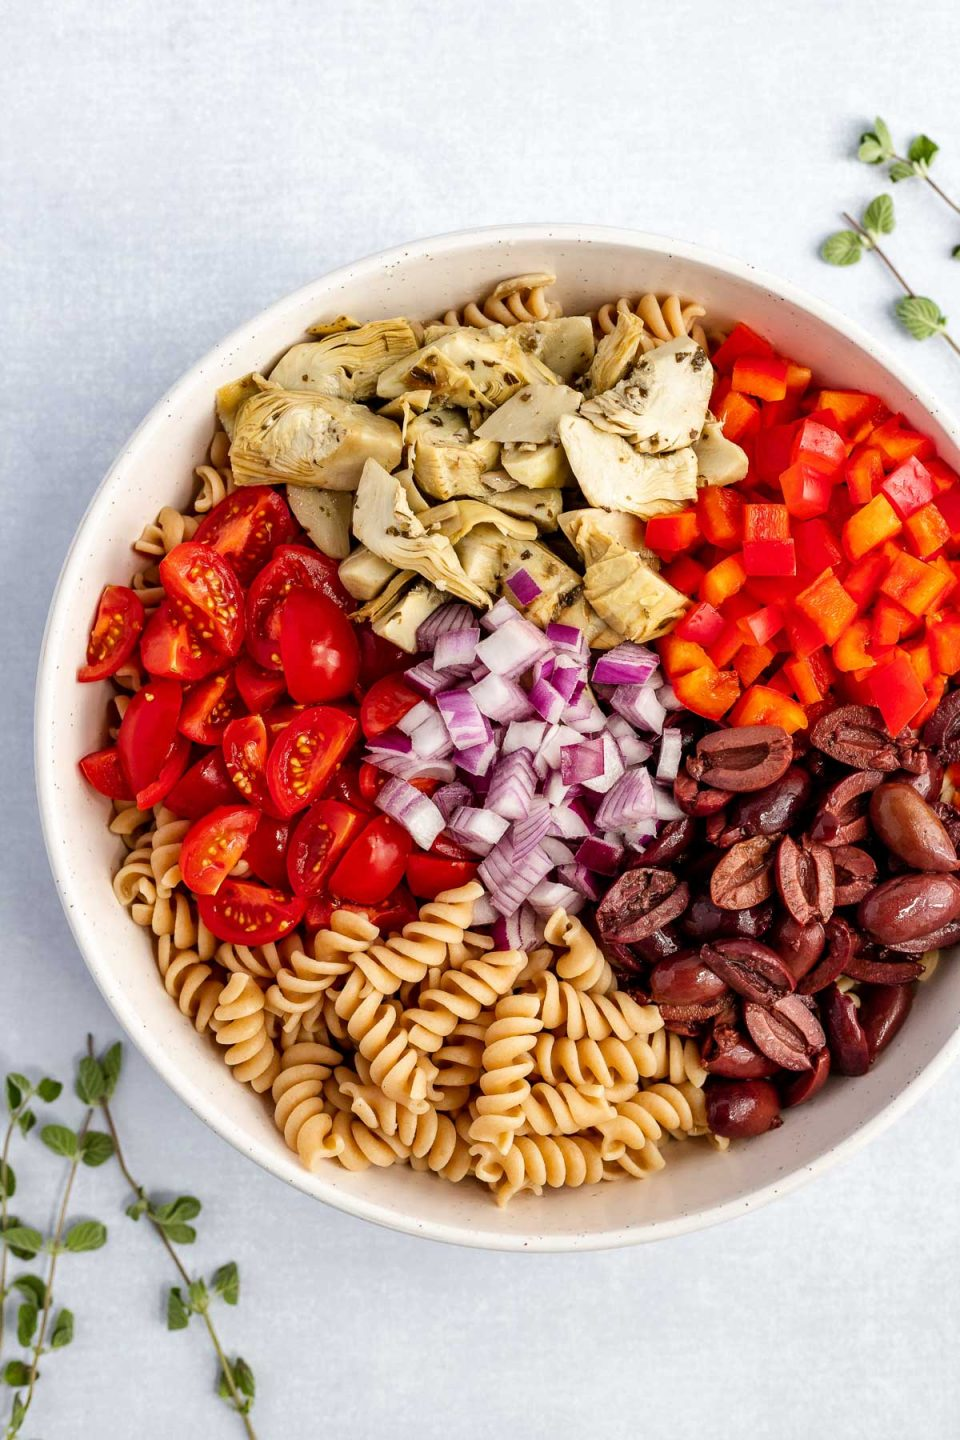 Vegan Italian pasta salad ingredients grouped in a large mixing bowl: pasta, artichoke hearts, red bell pepper, kalamata olives, tomatoes, & red onions. The bowl sits atop a white blue surface, with some fresh oregano leaves scattered around it.